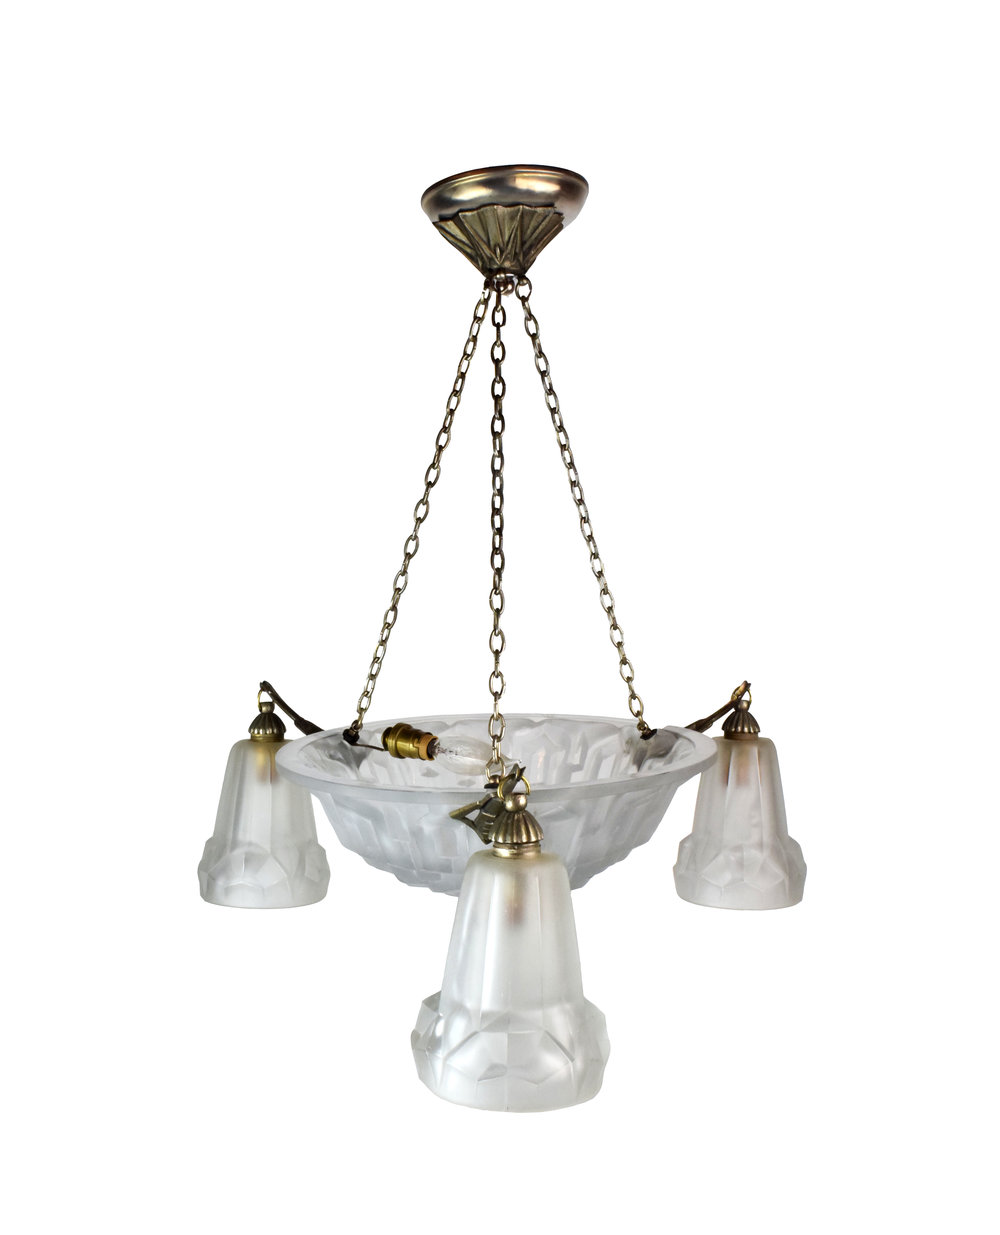 french art deco chandelier with 3 shades